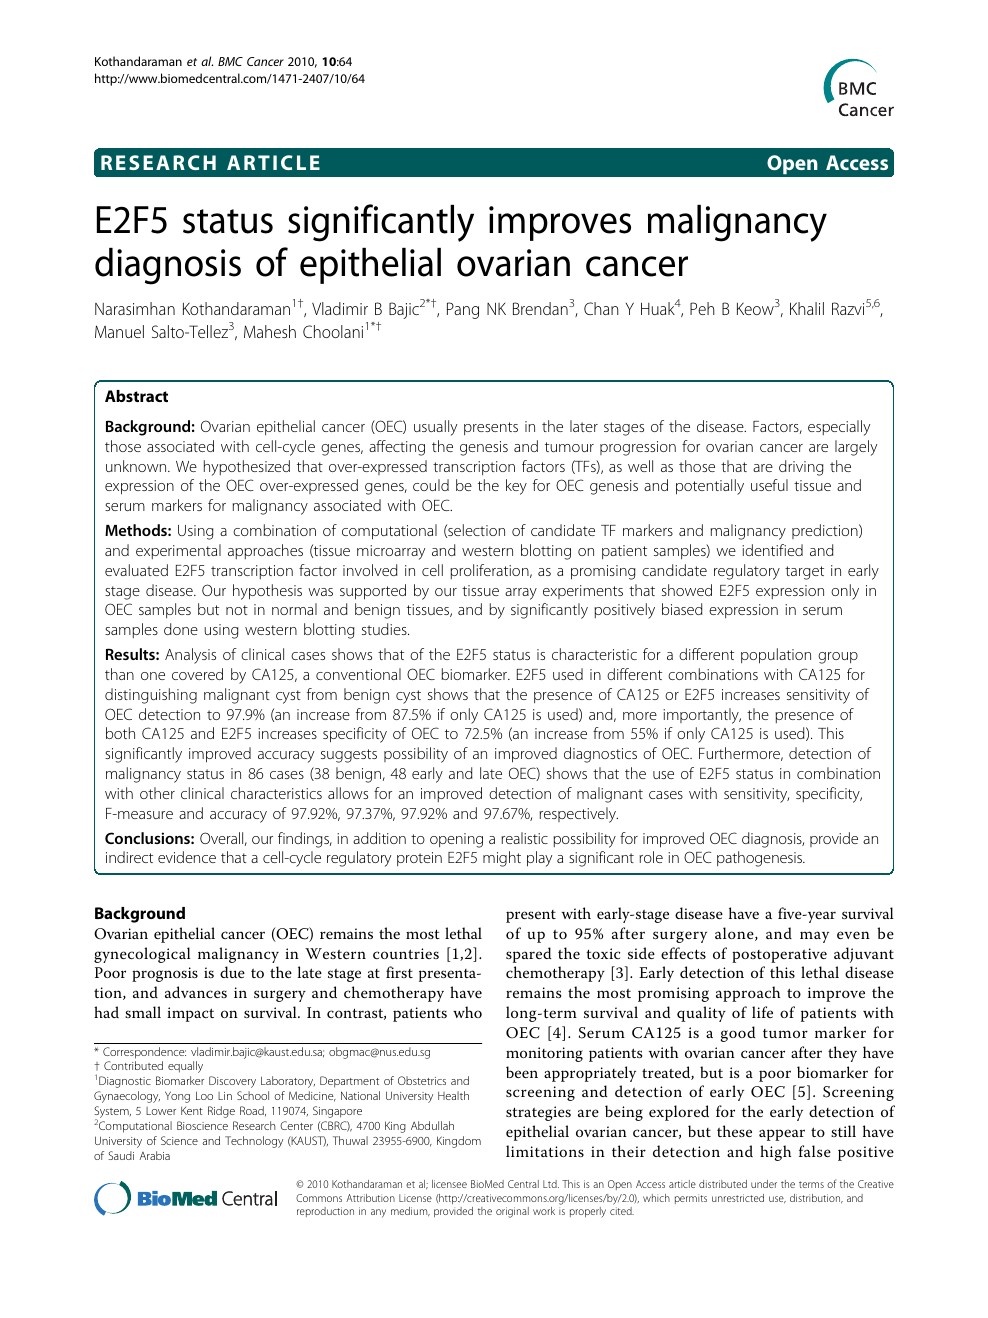 E2f5 Status Significantly Improves Malignancy Diagnosis Of Epithelial Ovarian Cancer Topic Of Research Paper In Clinical Medicine Download Scholarly Article Pdf And Read For Free On Cyberleninka Open Science Hub